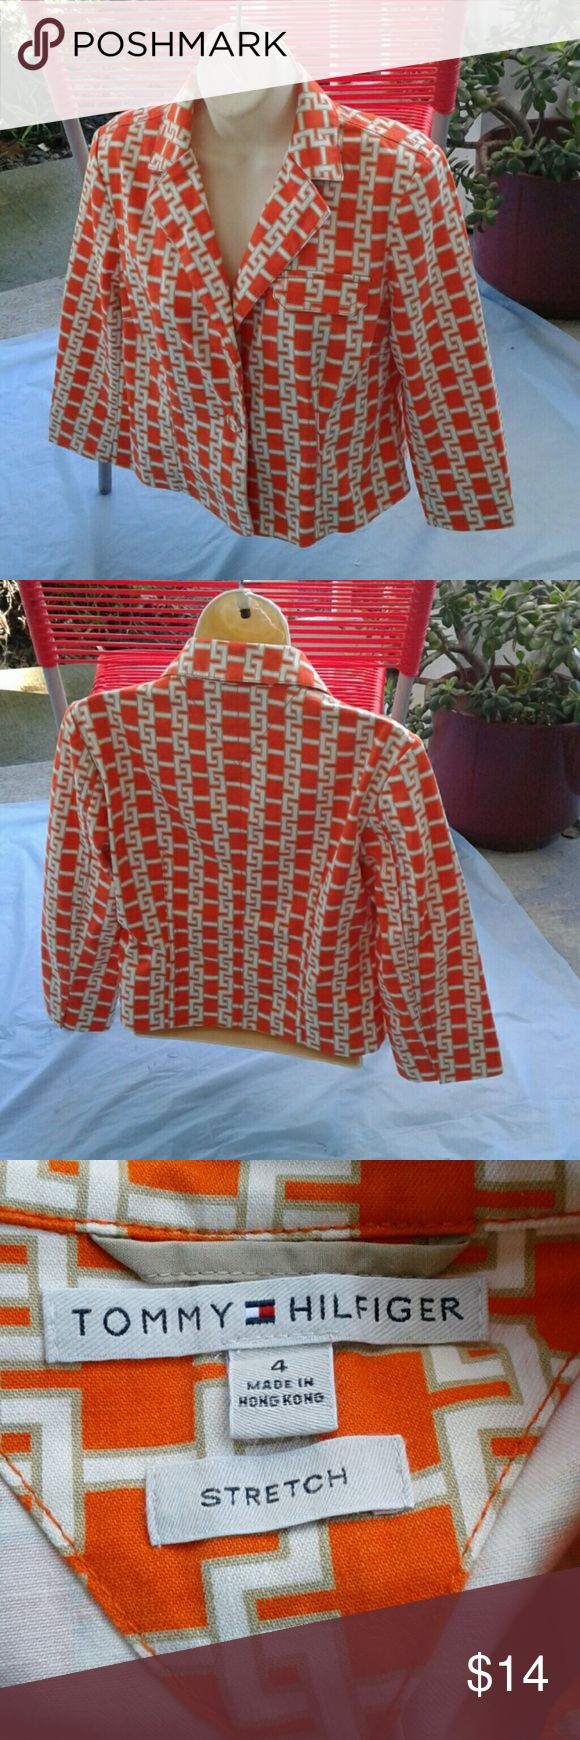 TOMMY HILFIGER WOMEN'S GEO LINKS PRINT  BLAZER PRETTY BLEND OF ORANGE, OFF WHITE, WITH GOLD GIVE THIS TOMMY HILFIGER STRETCH LINK JACKET GLAMOUR,.  ONE BUTTON CLOSURE, TAILORED FIT, COTTON BLEND, GREAT PRE-LOVED CONDITION Tommy Hilfiger Jackets & Coats Blazers